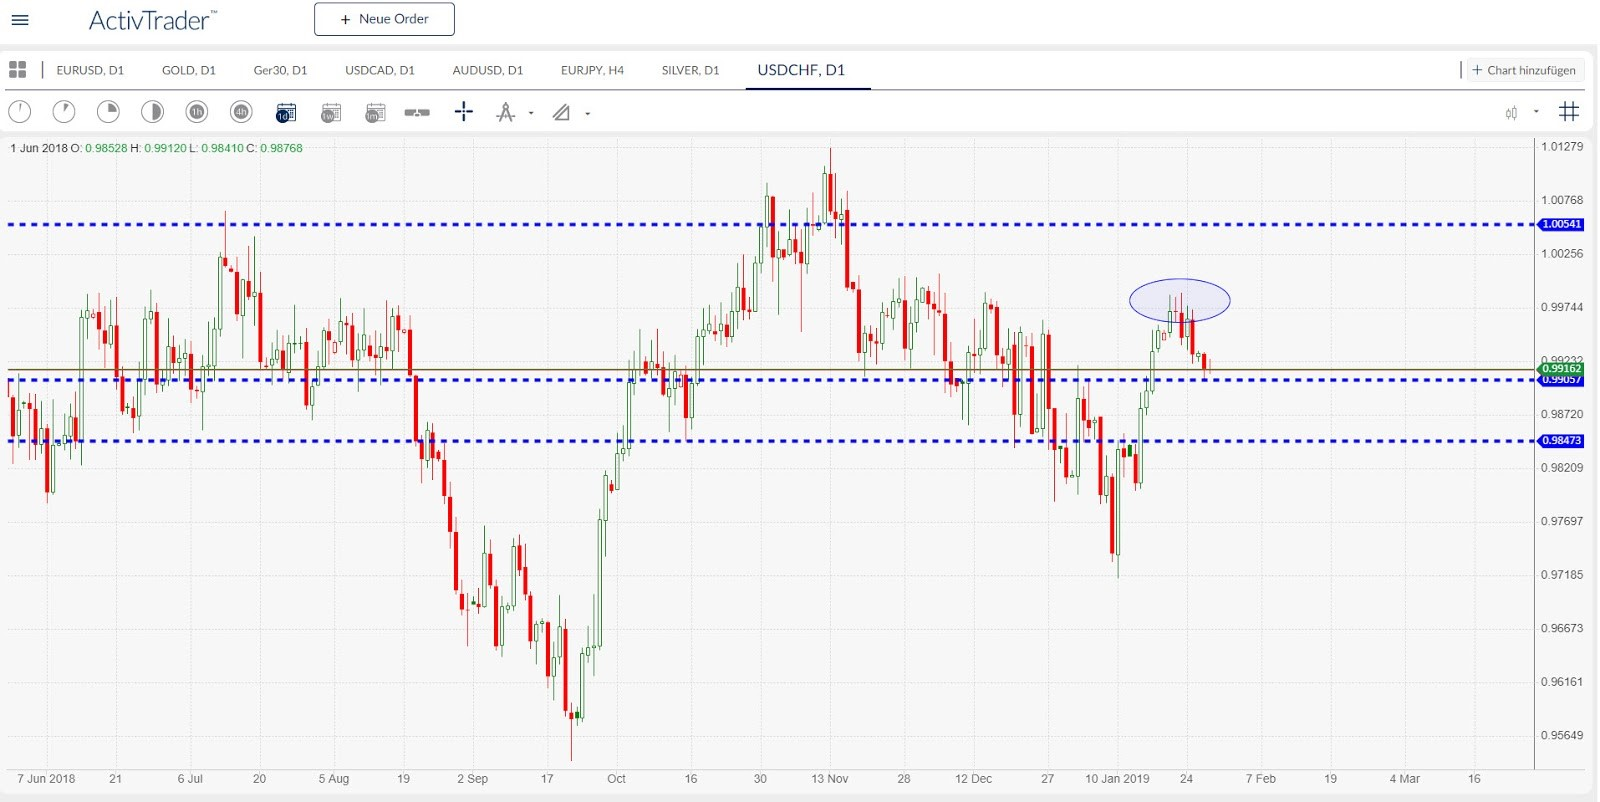 USDCHF (Swissy) Daily Chart | Source: ActivTrader